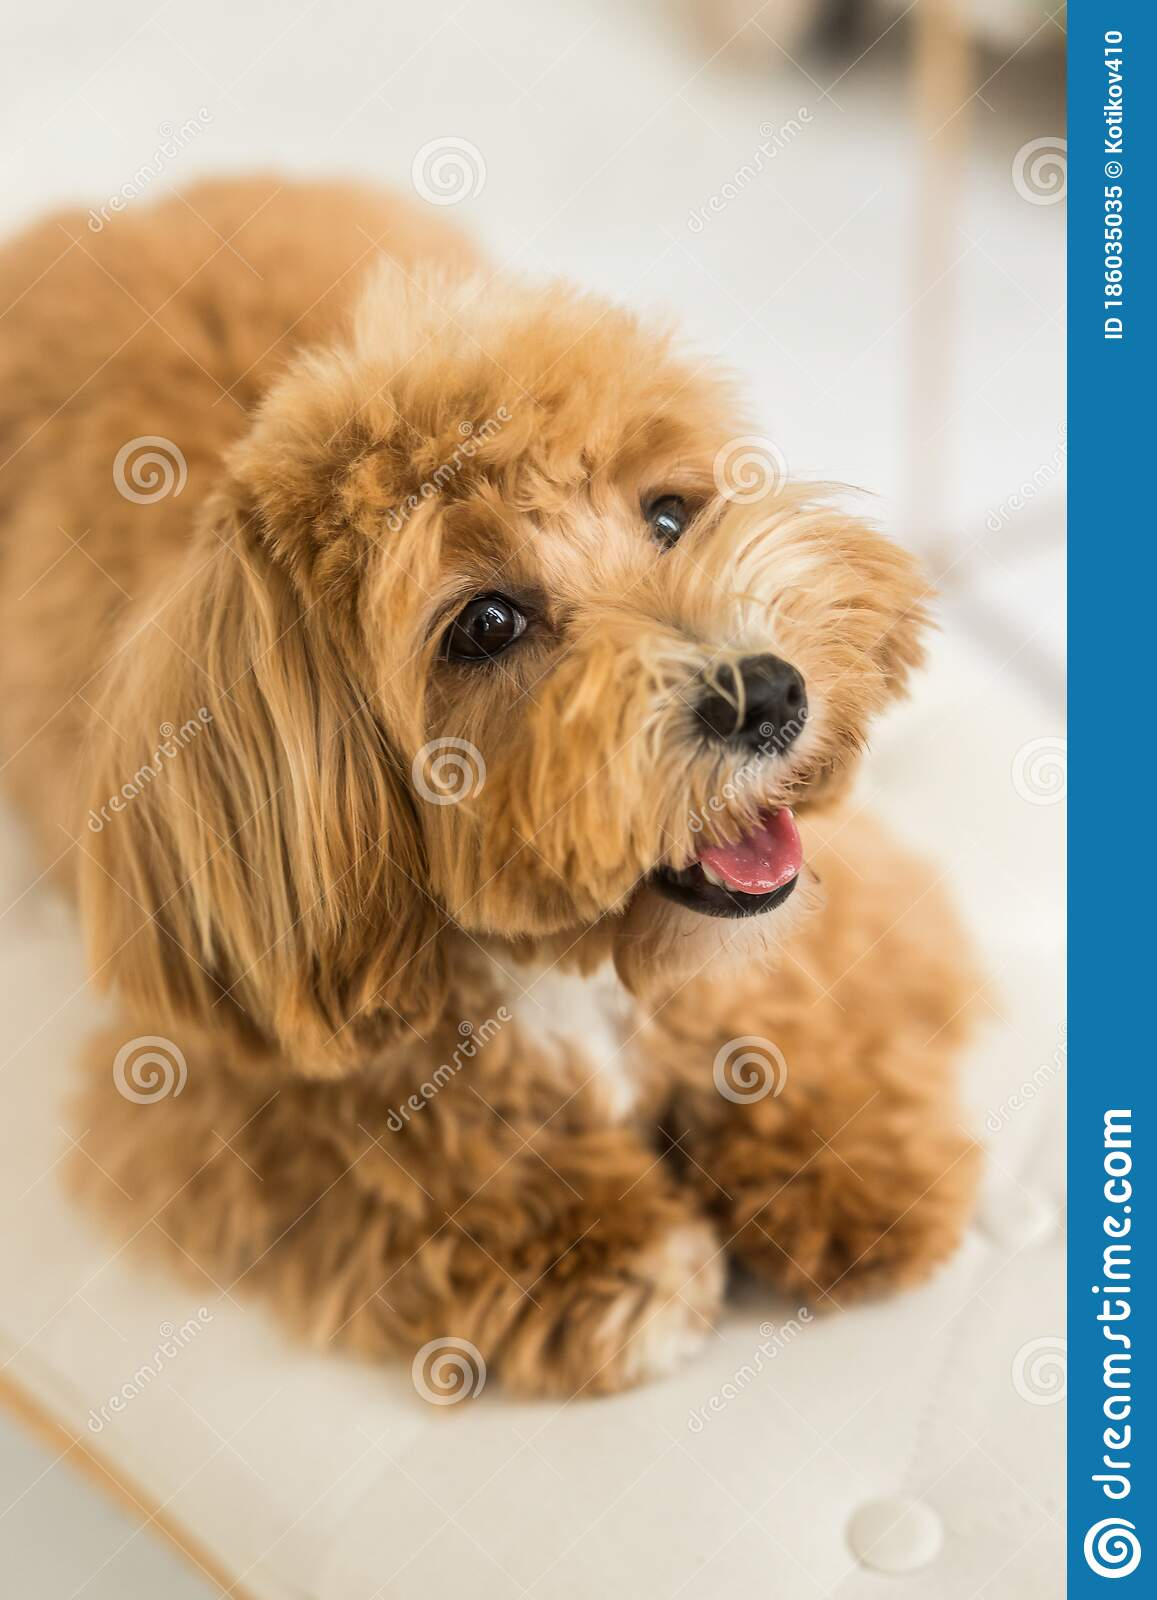 Toy Poodle Lying On White Armchair And Muzzle In Camera Stock Image Image Of Breed Funny 186035035